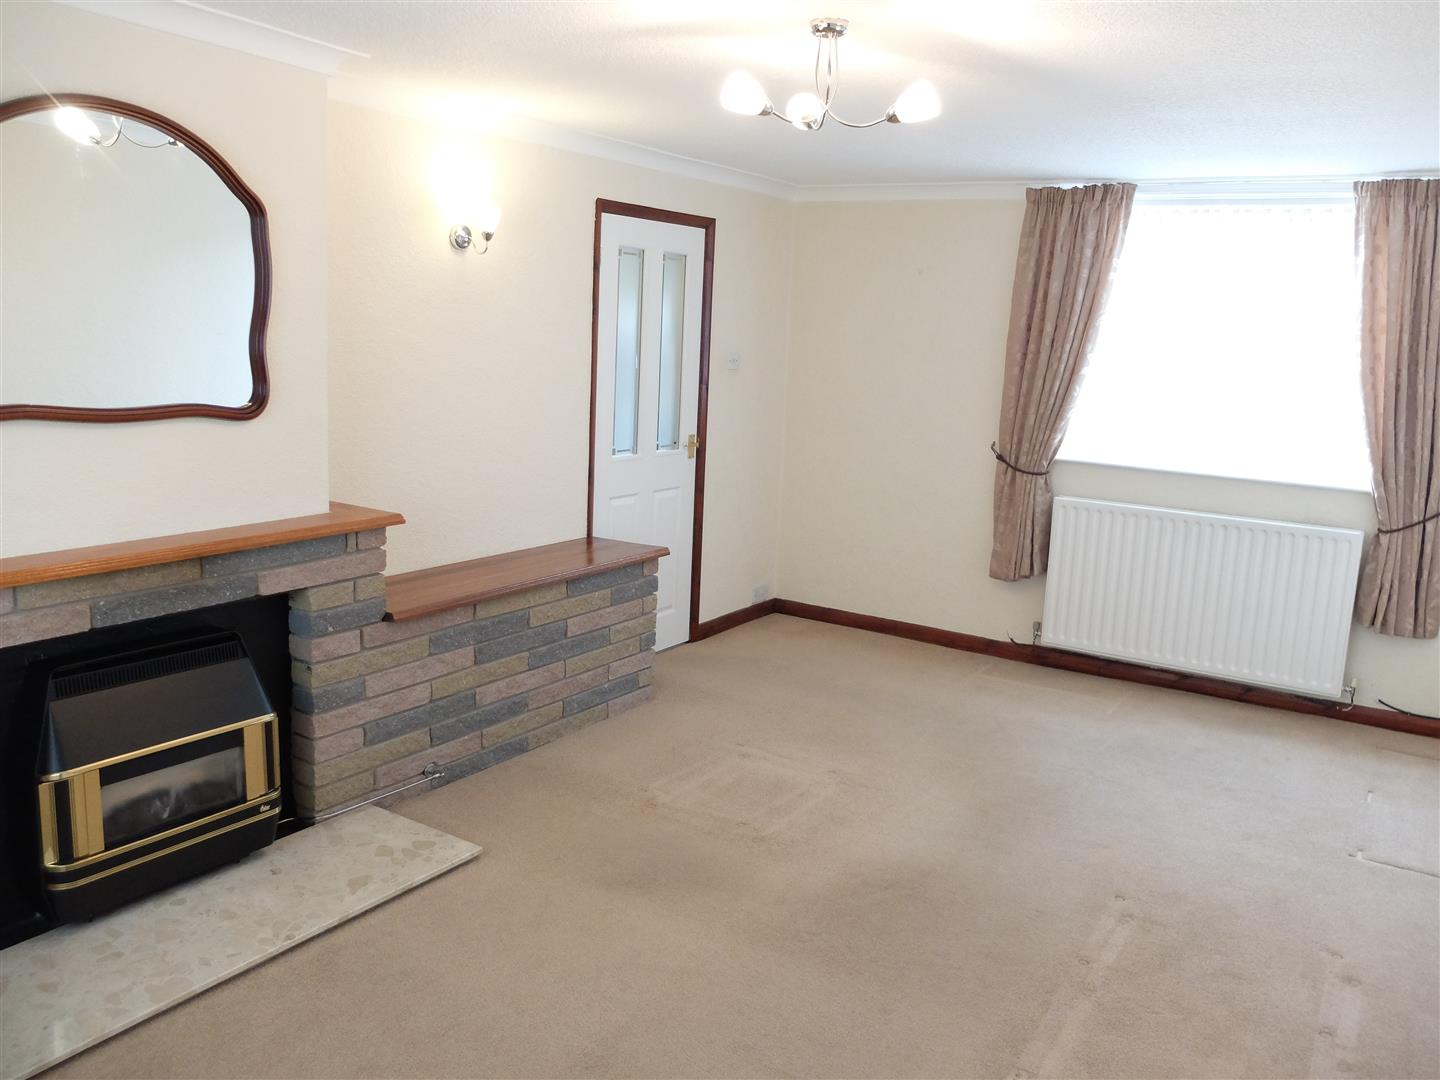 3 Bedrooms House - Mid Terrace On Sale 79 Westrigg Road Carlisle